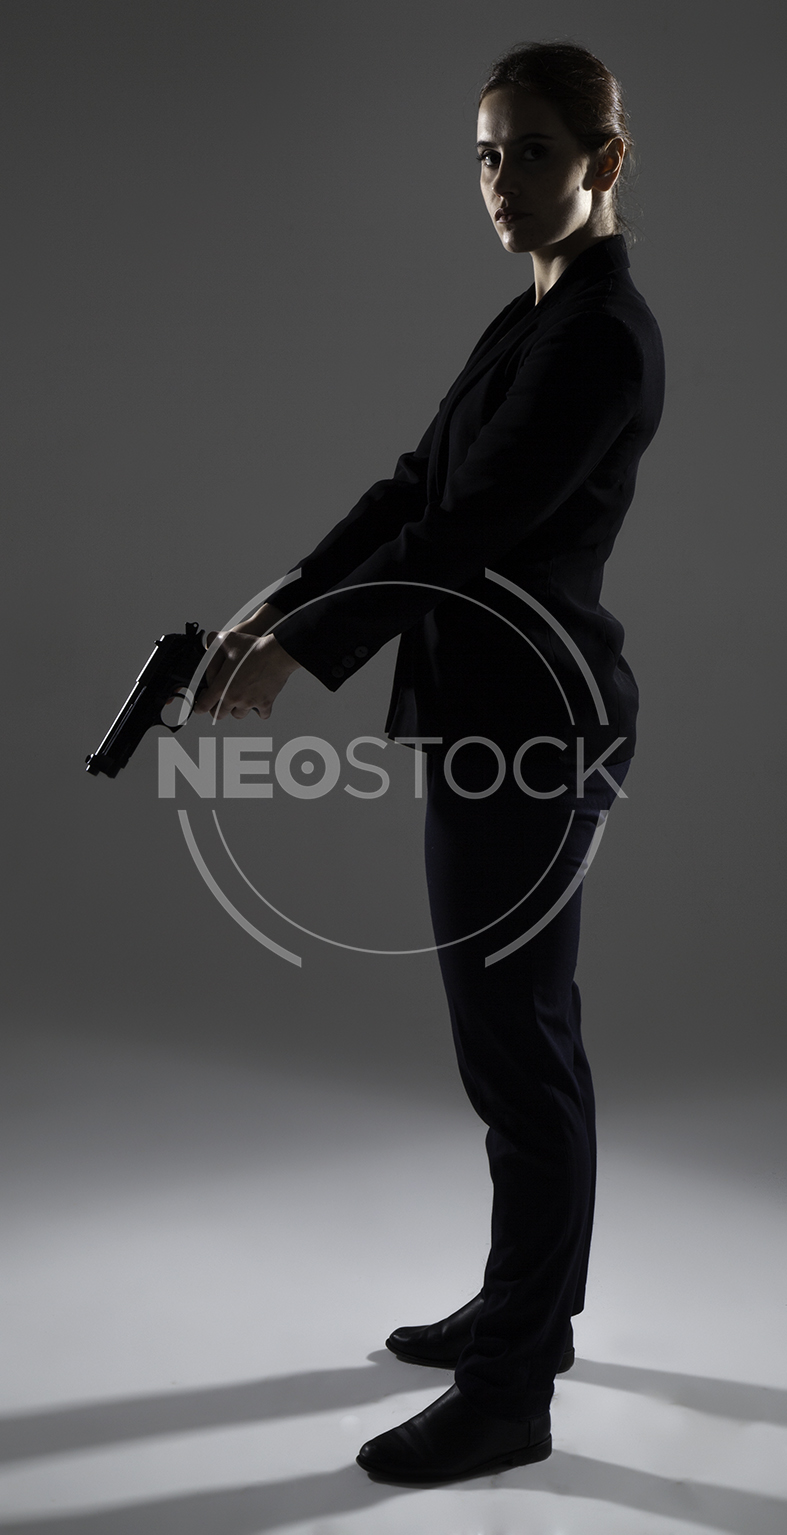 NeoStock - Emily Government Agent - Stock Photography V